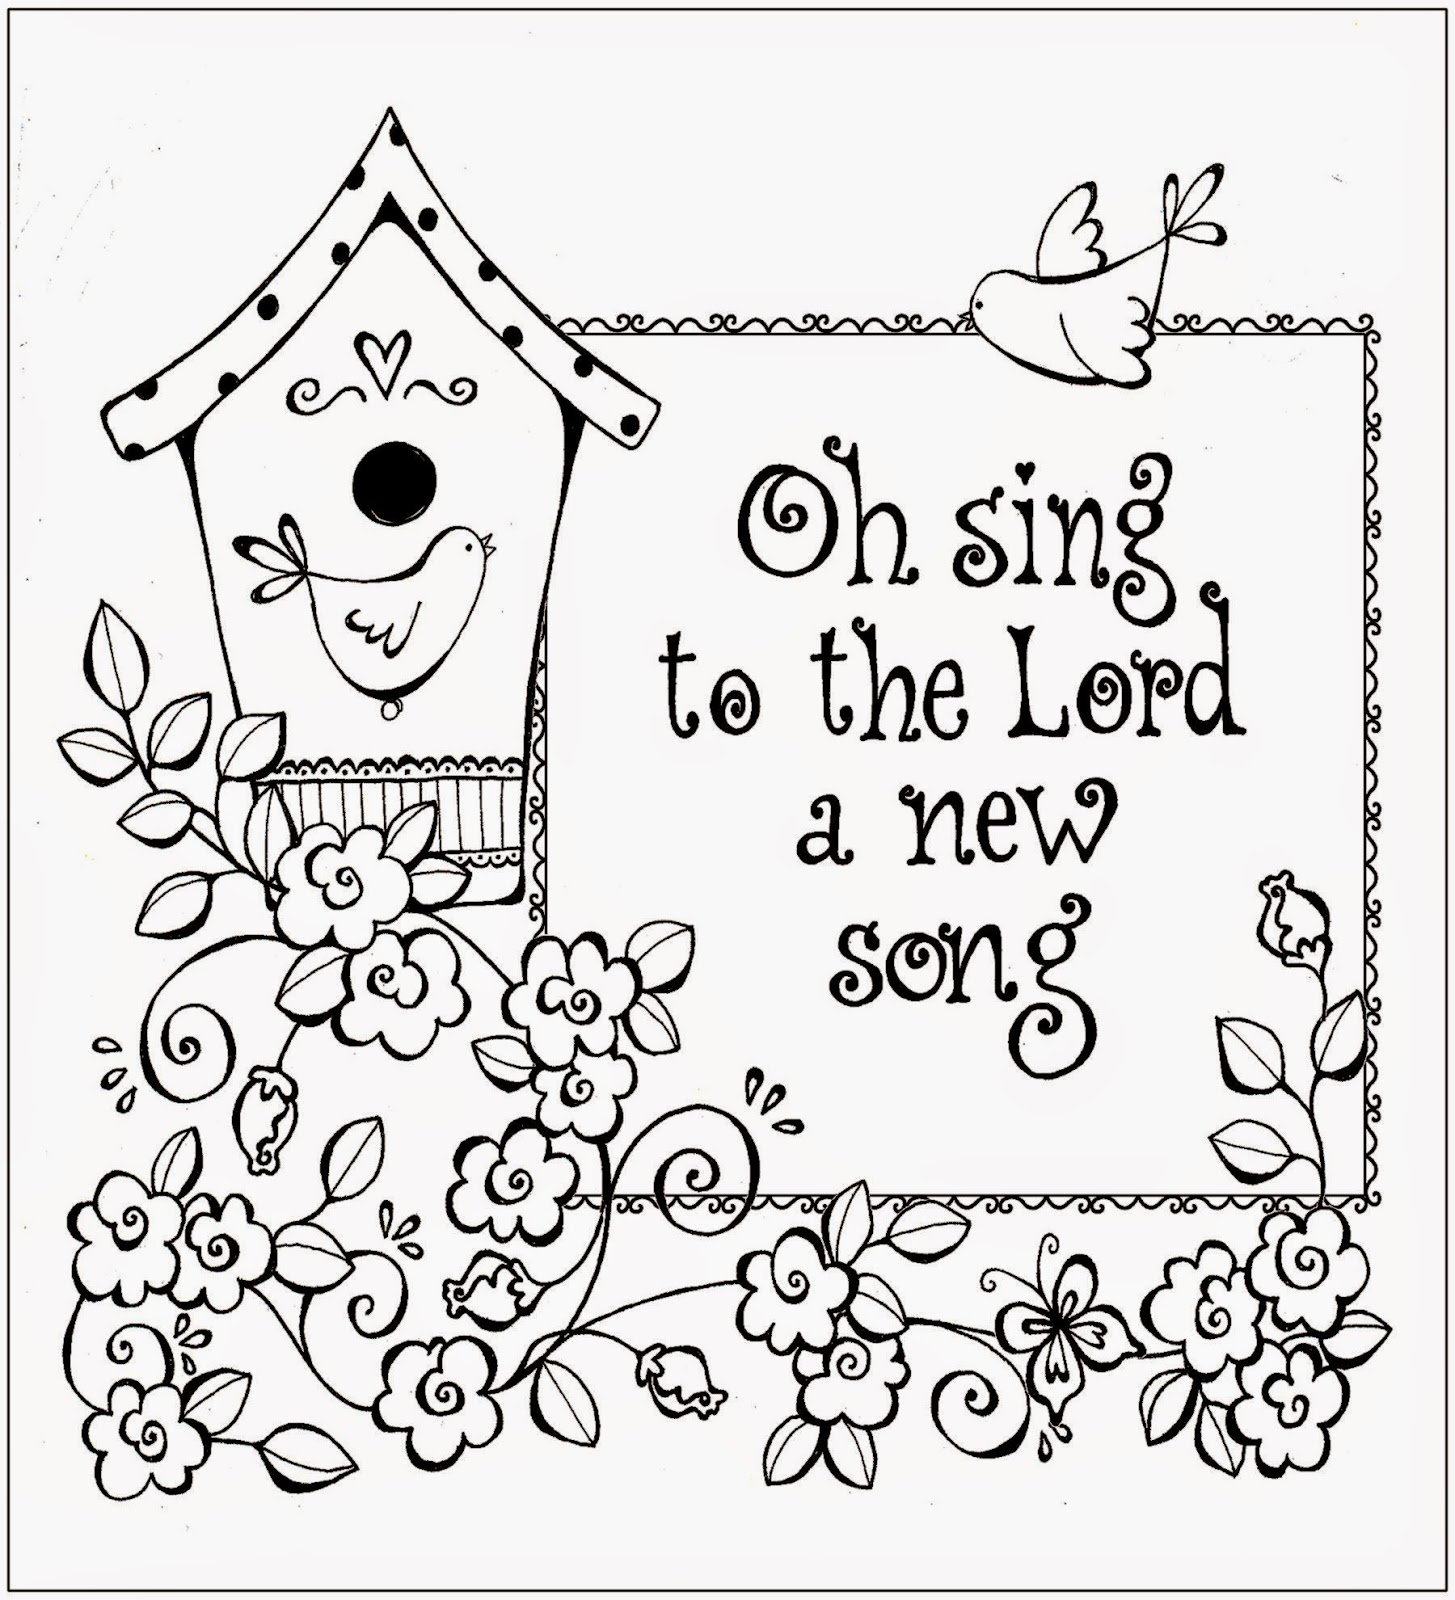 Clip Art Christmas Coloring Pages For Sunday School coloring pages for sunday school eassume com christmas fantastic school